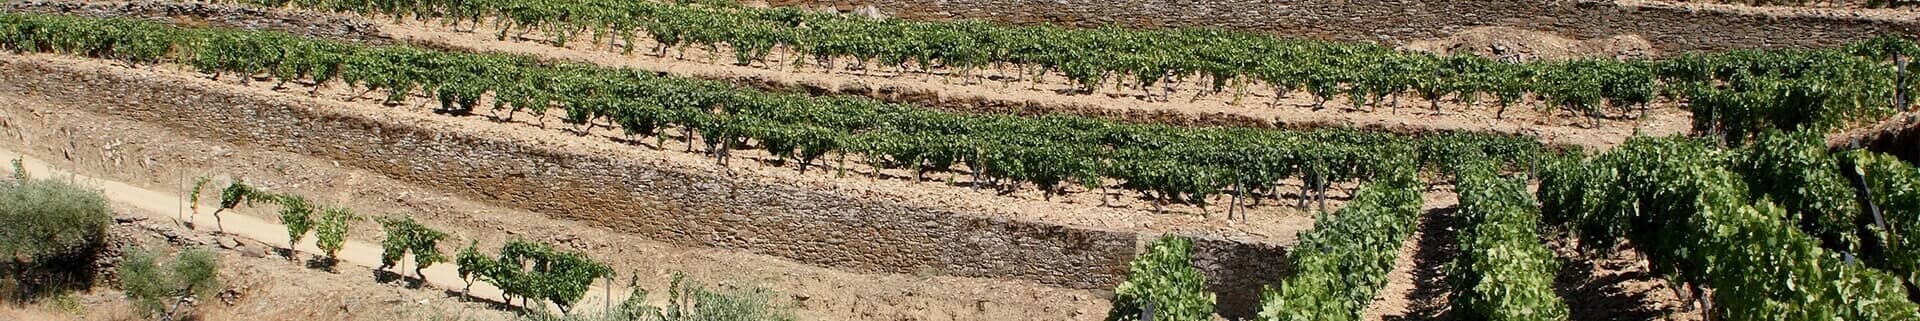 Port wine vineyards' soil in the Douro Valley